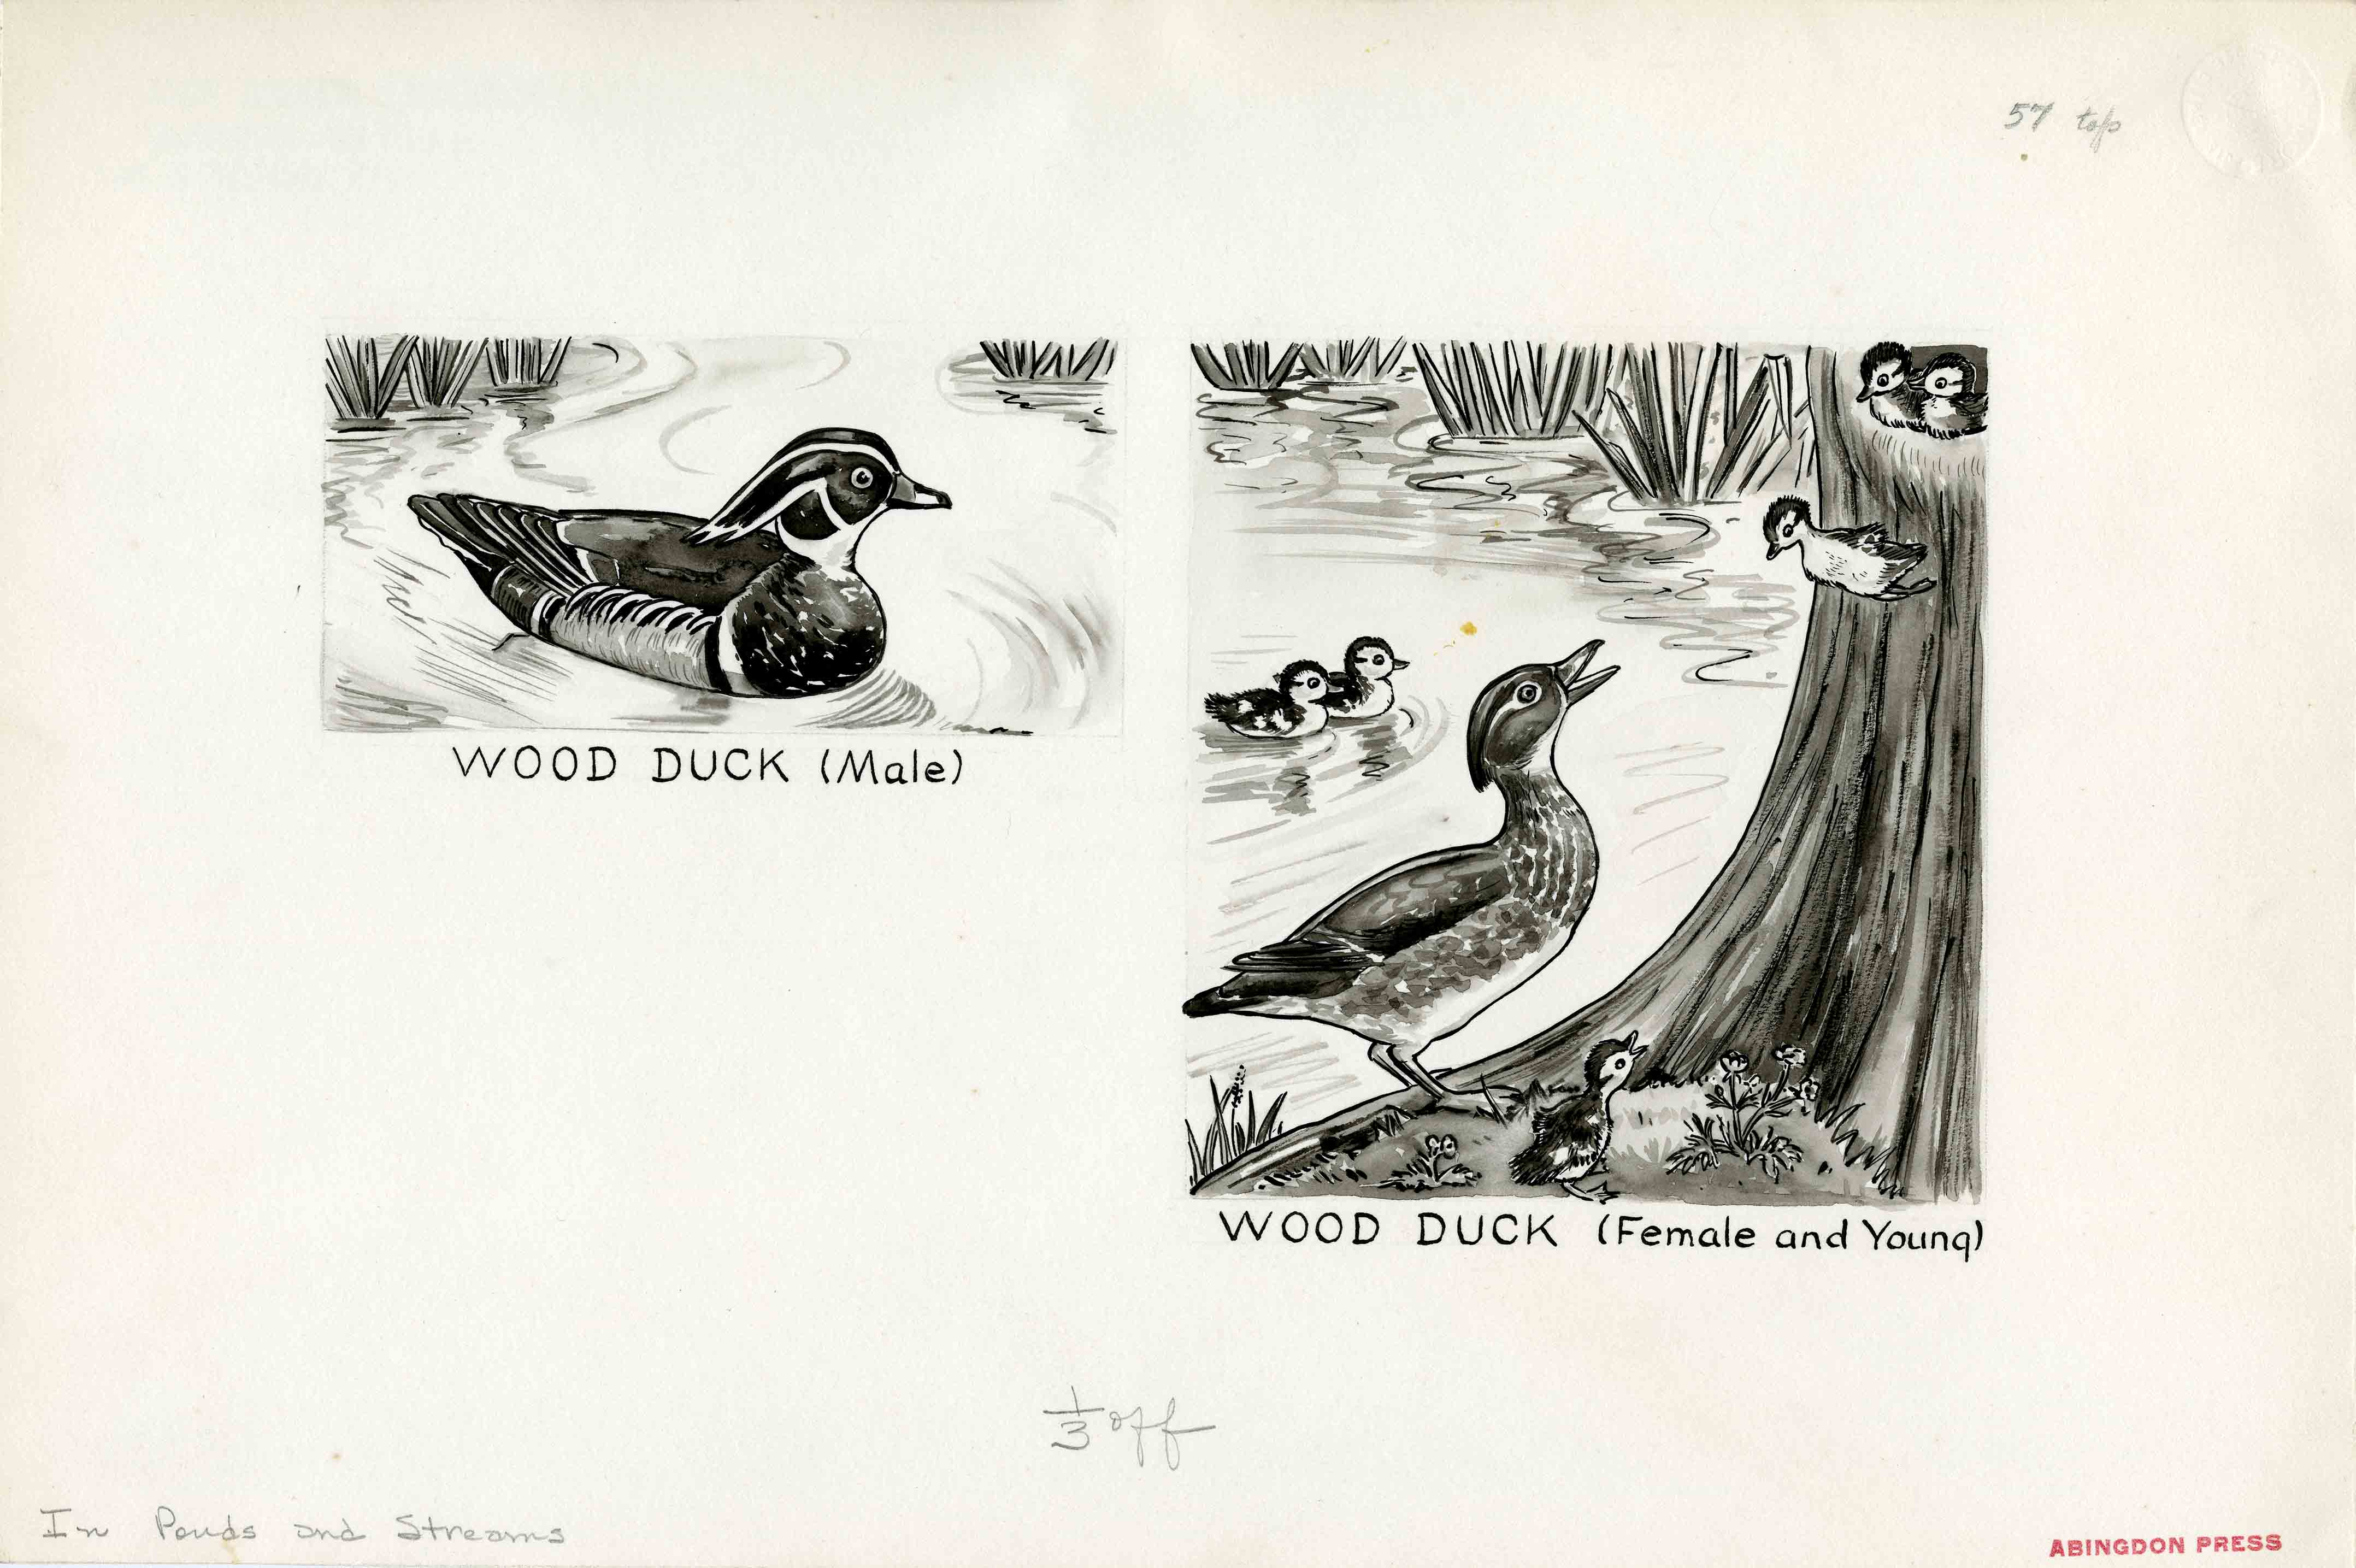 Sketches by Margaret Waring Buck